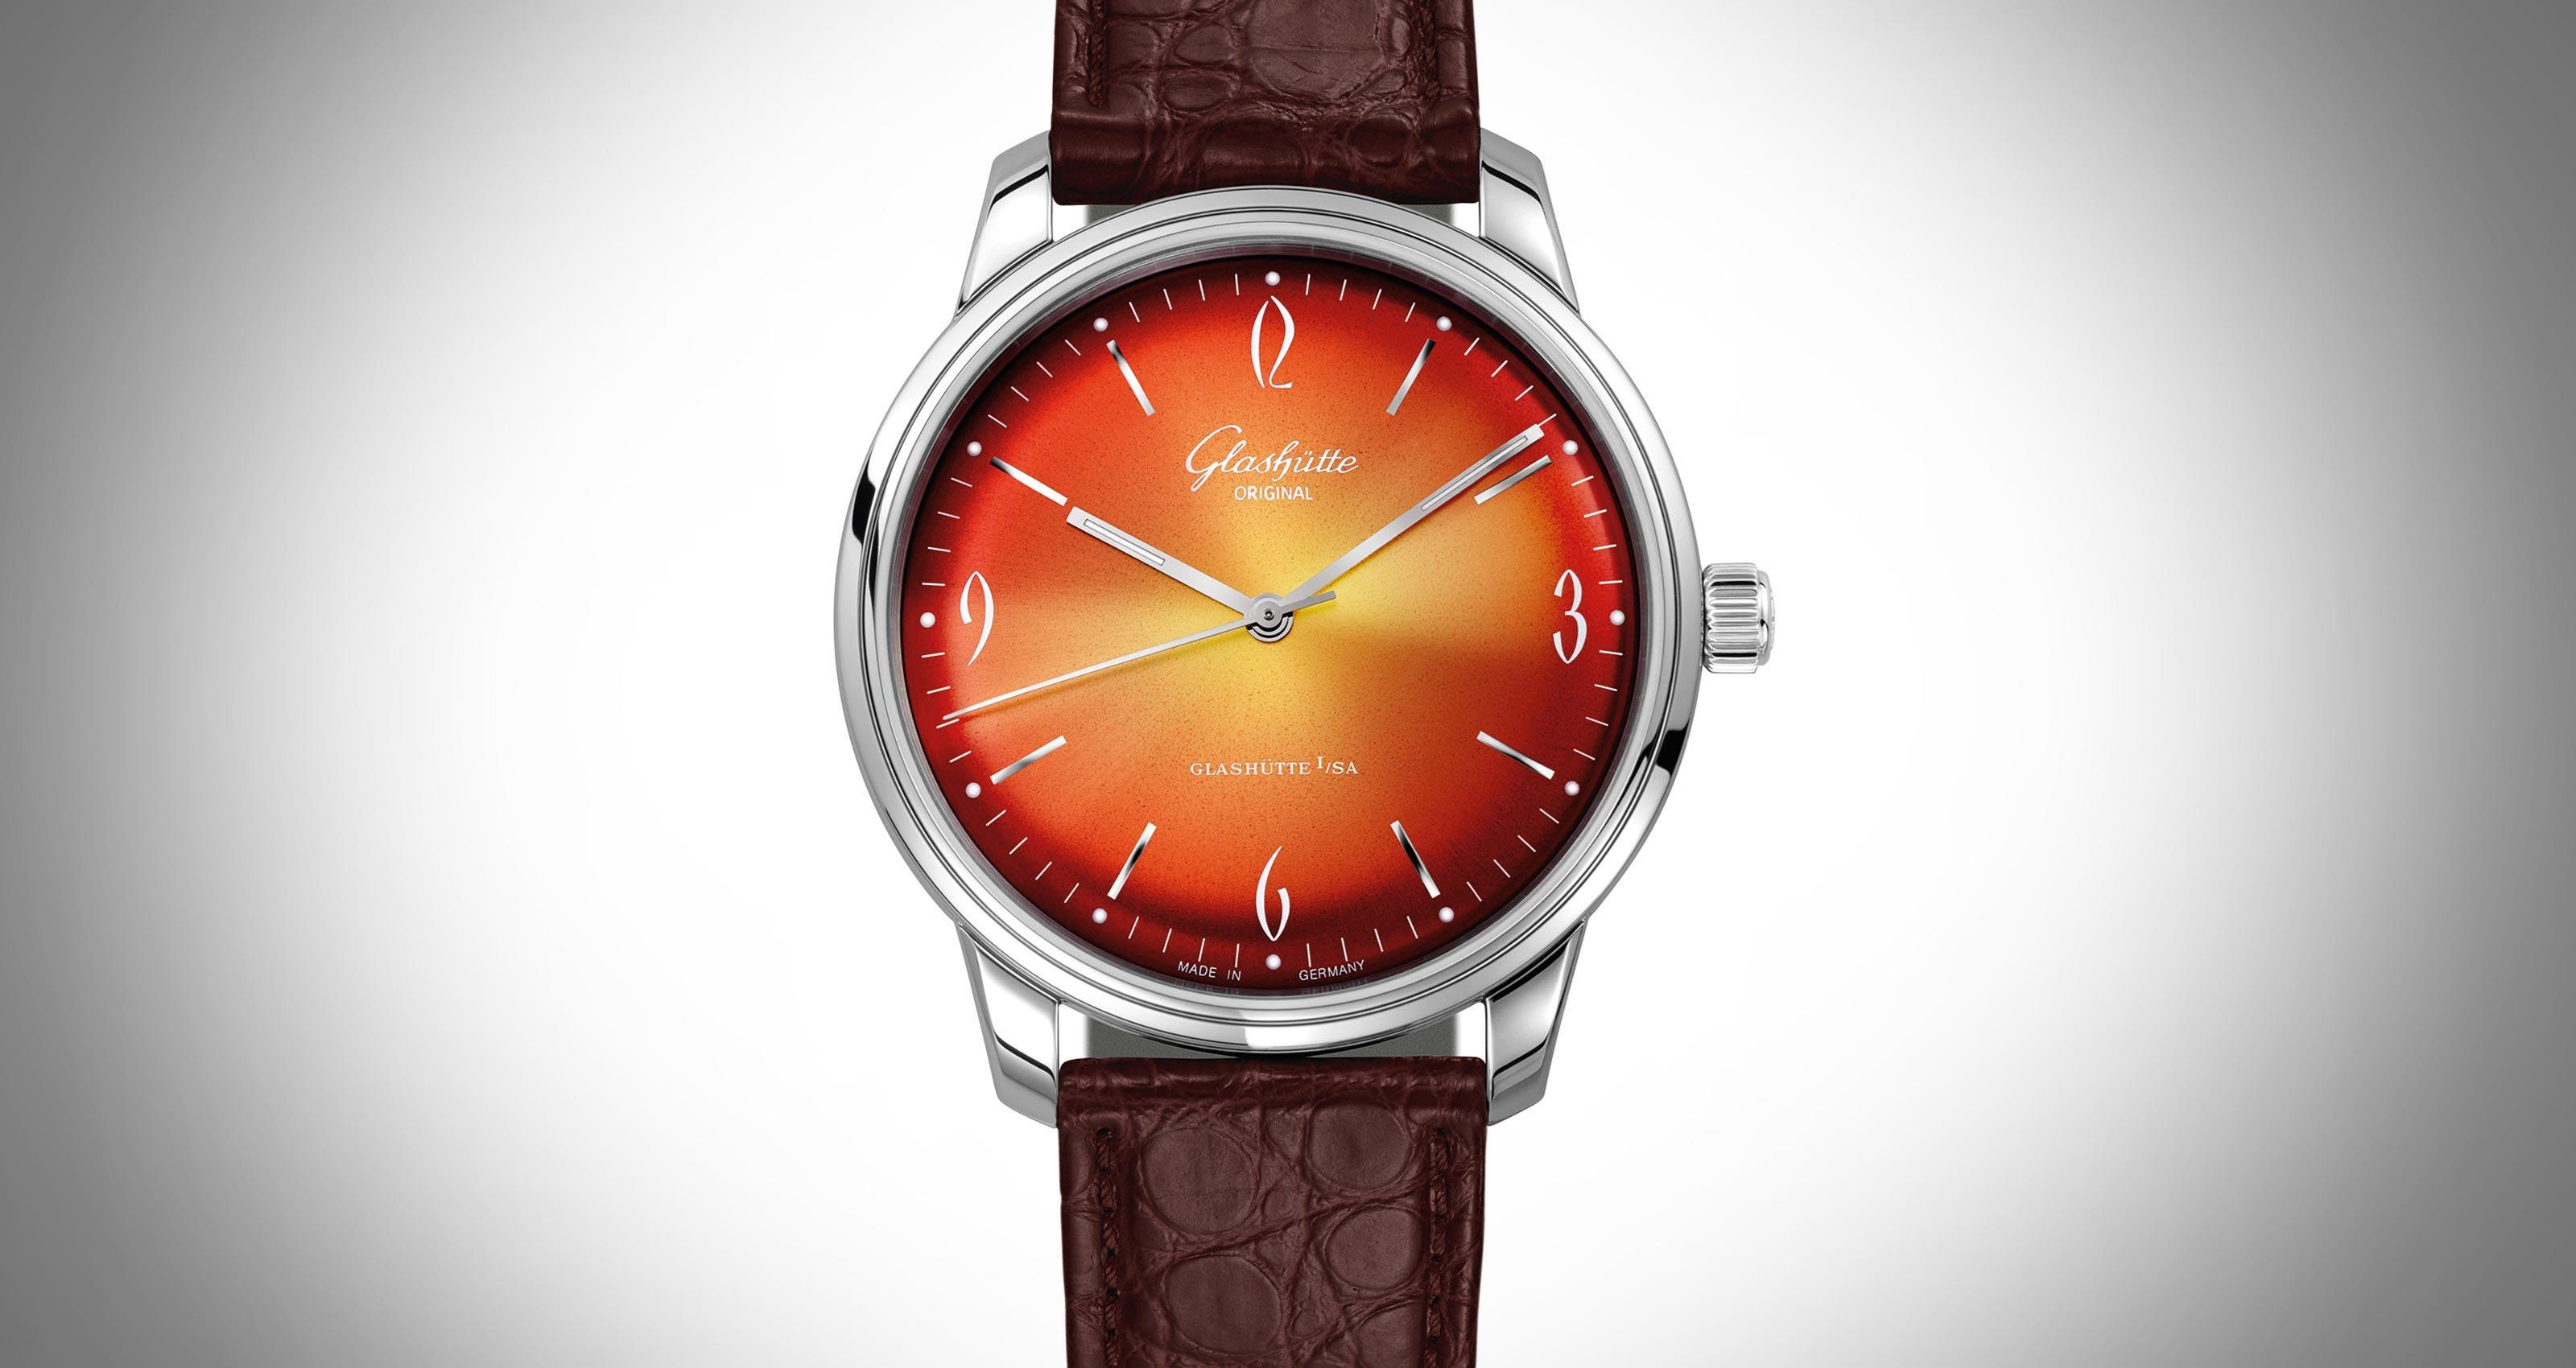 6. Glashütte Original The Sixties Iconic Collection